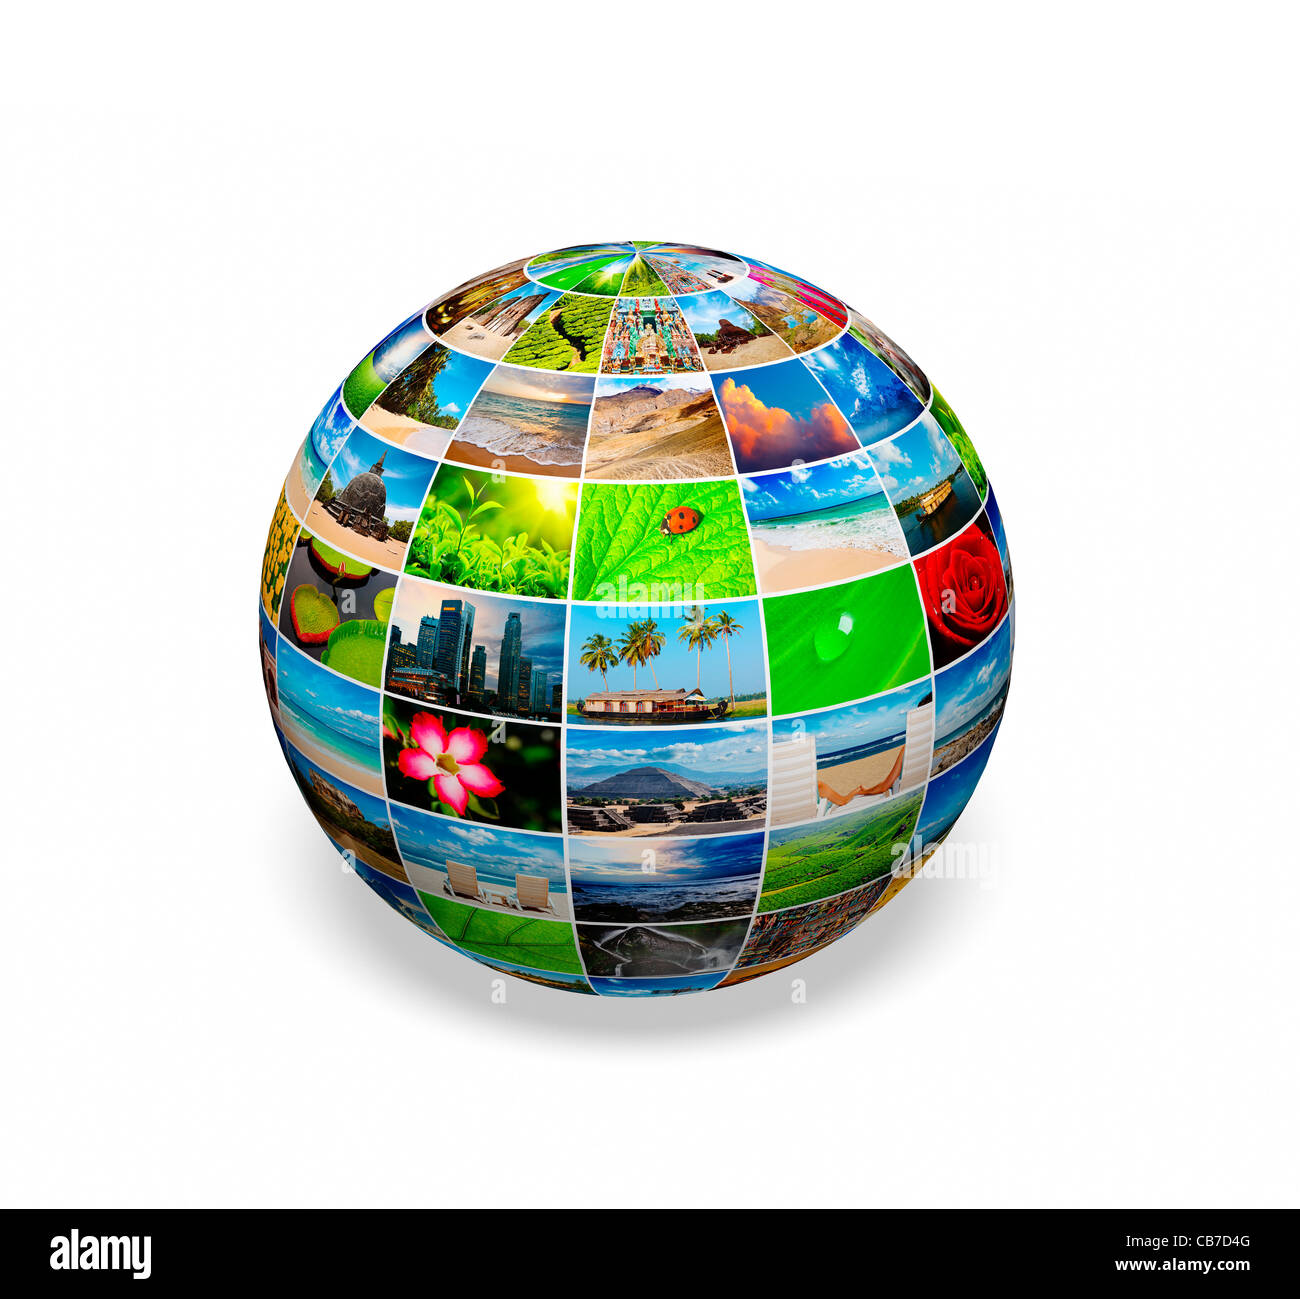 Social media planet - multimedia globe with images - Stock Image